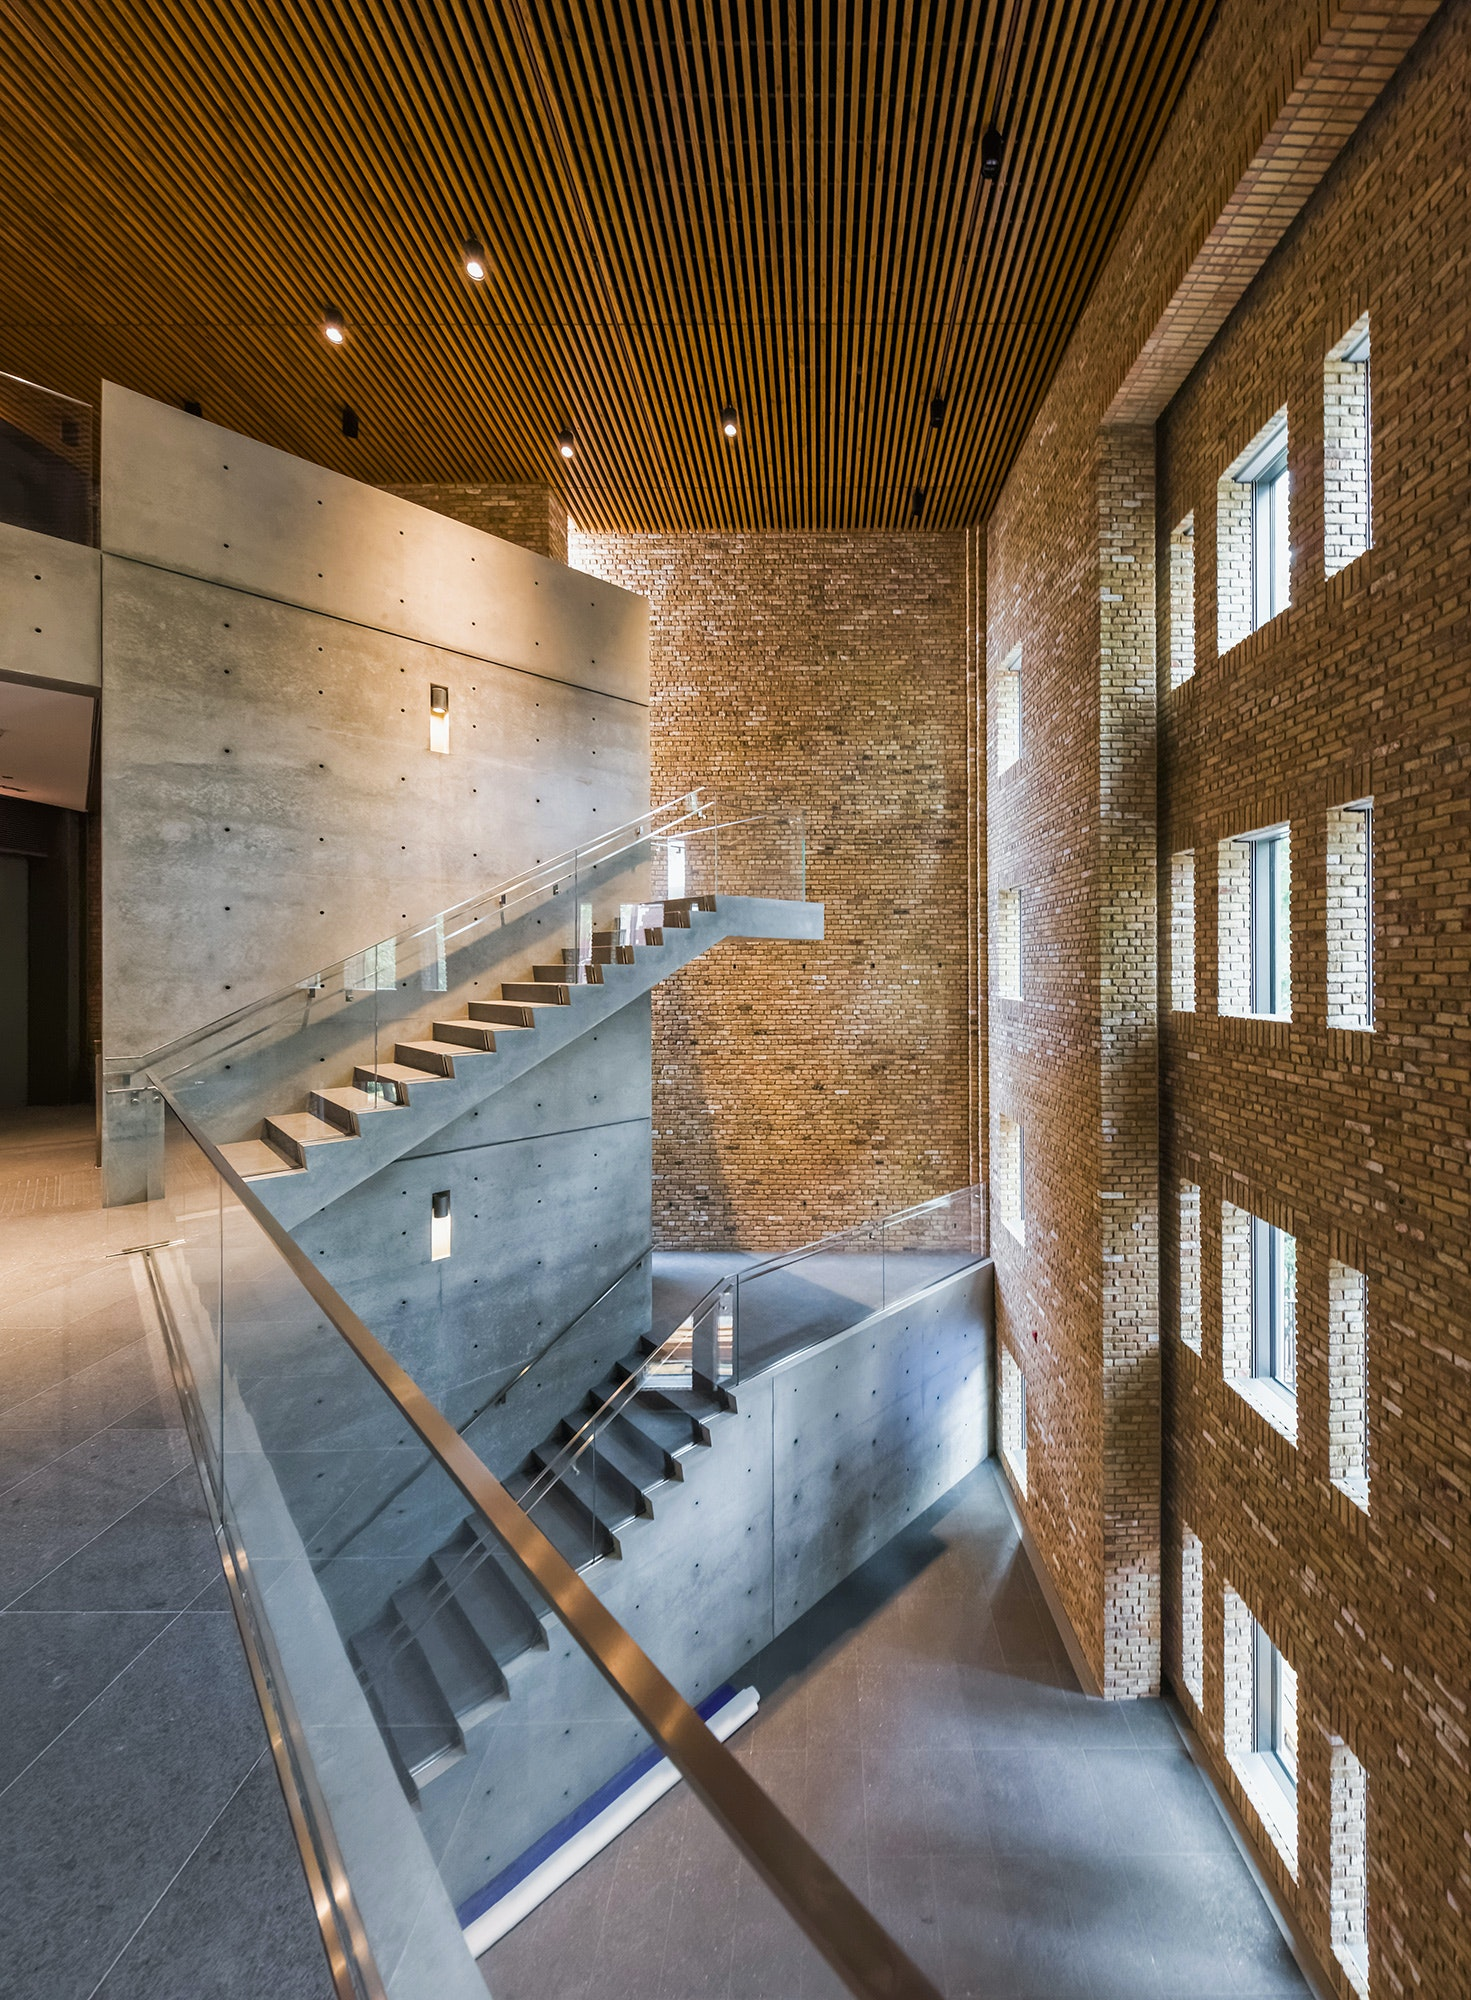 Tadao Ando-designed Wrightwood 659 art venue to open in Chicago with exhibition on Ando and Le Corbusier